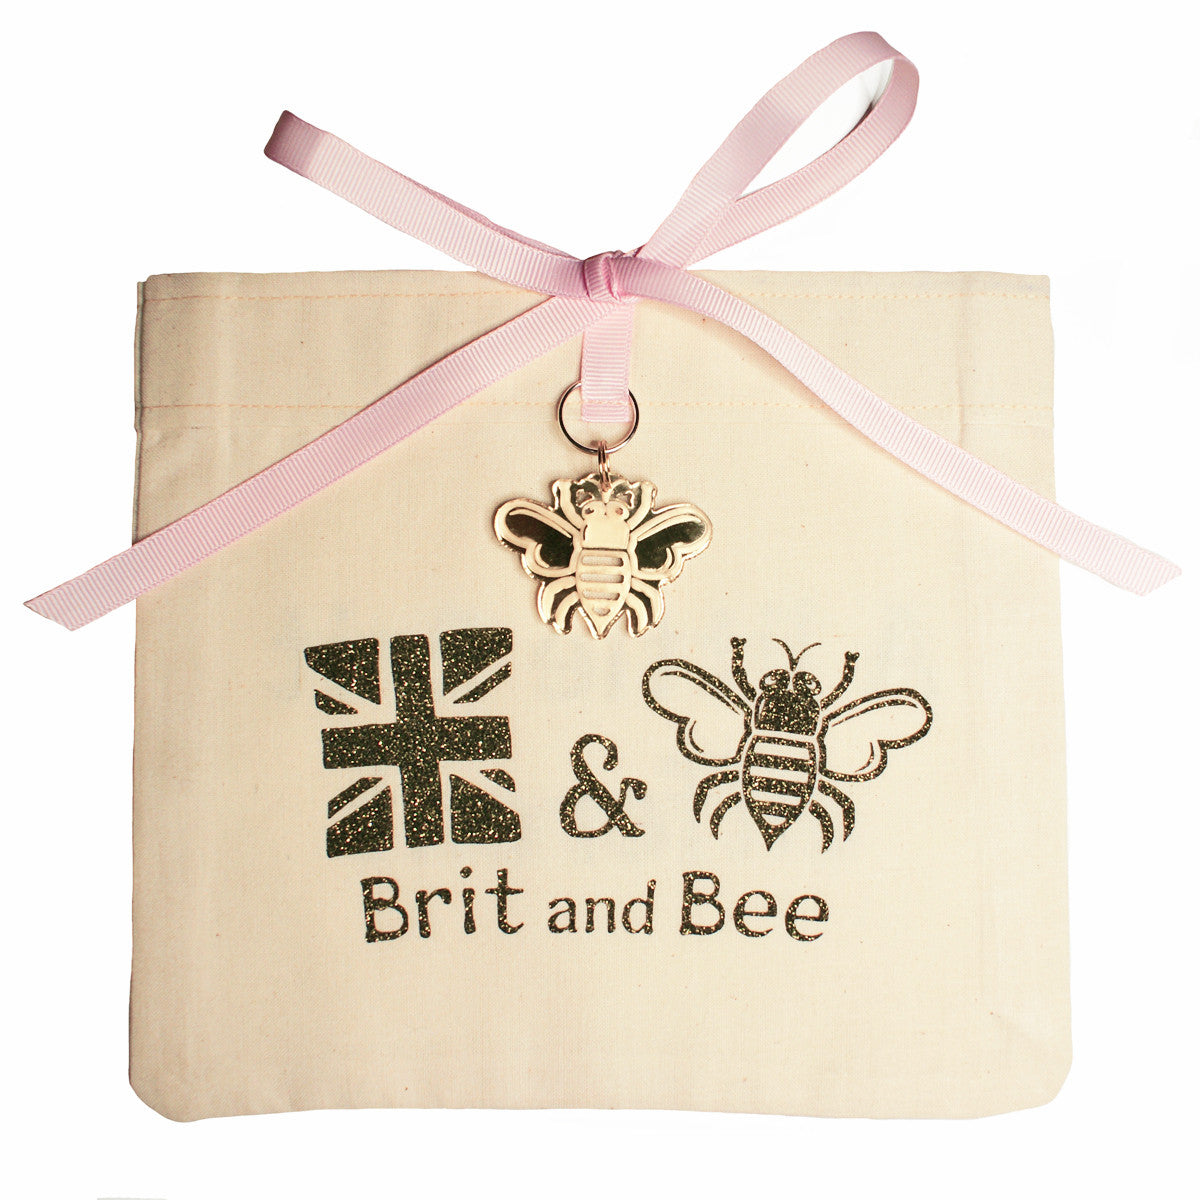 Brit and Bee Sorority Logo Decal - Gamma Phi Beta